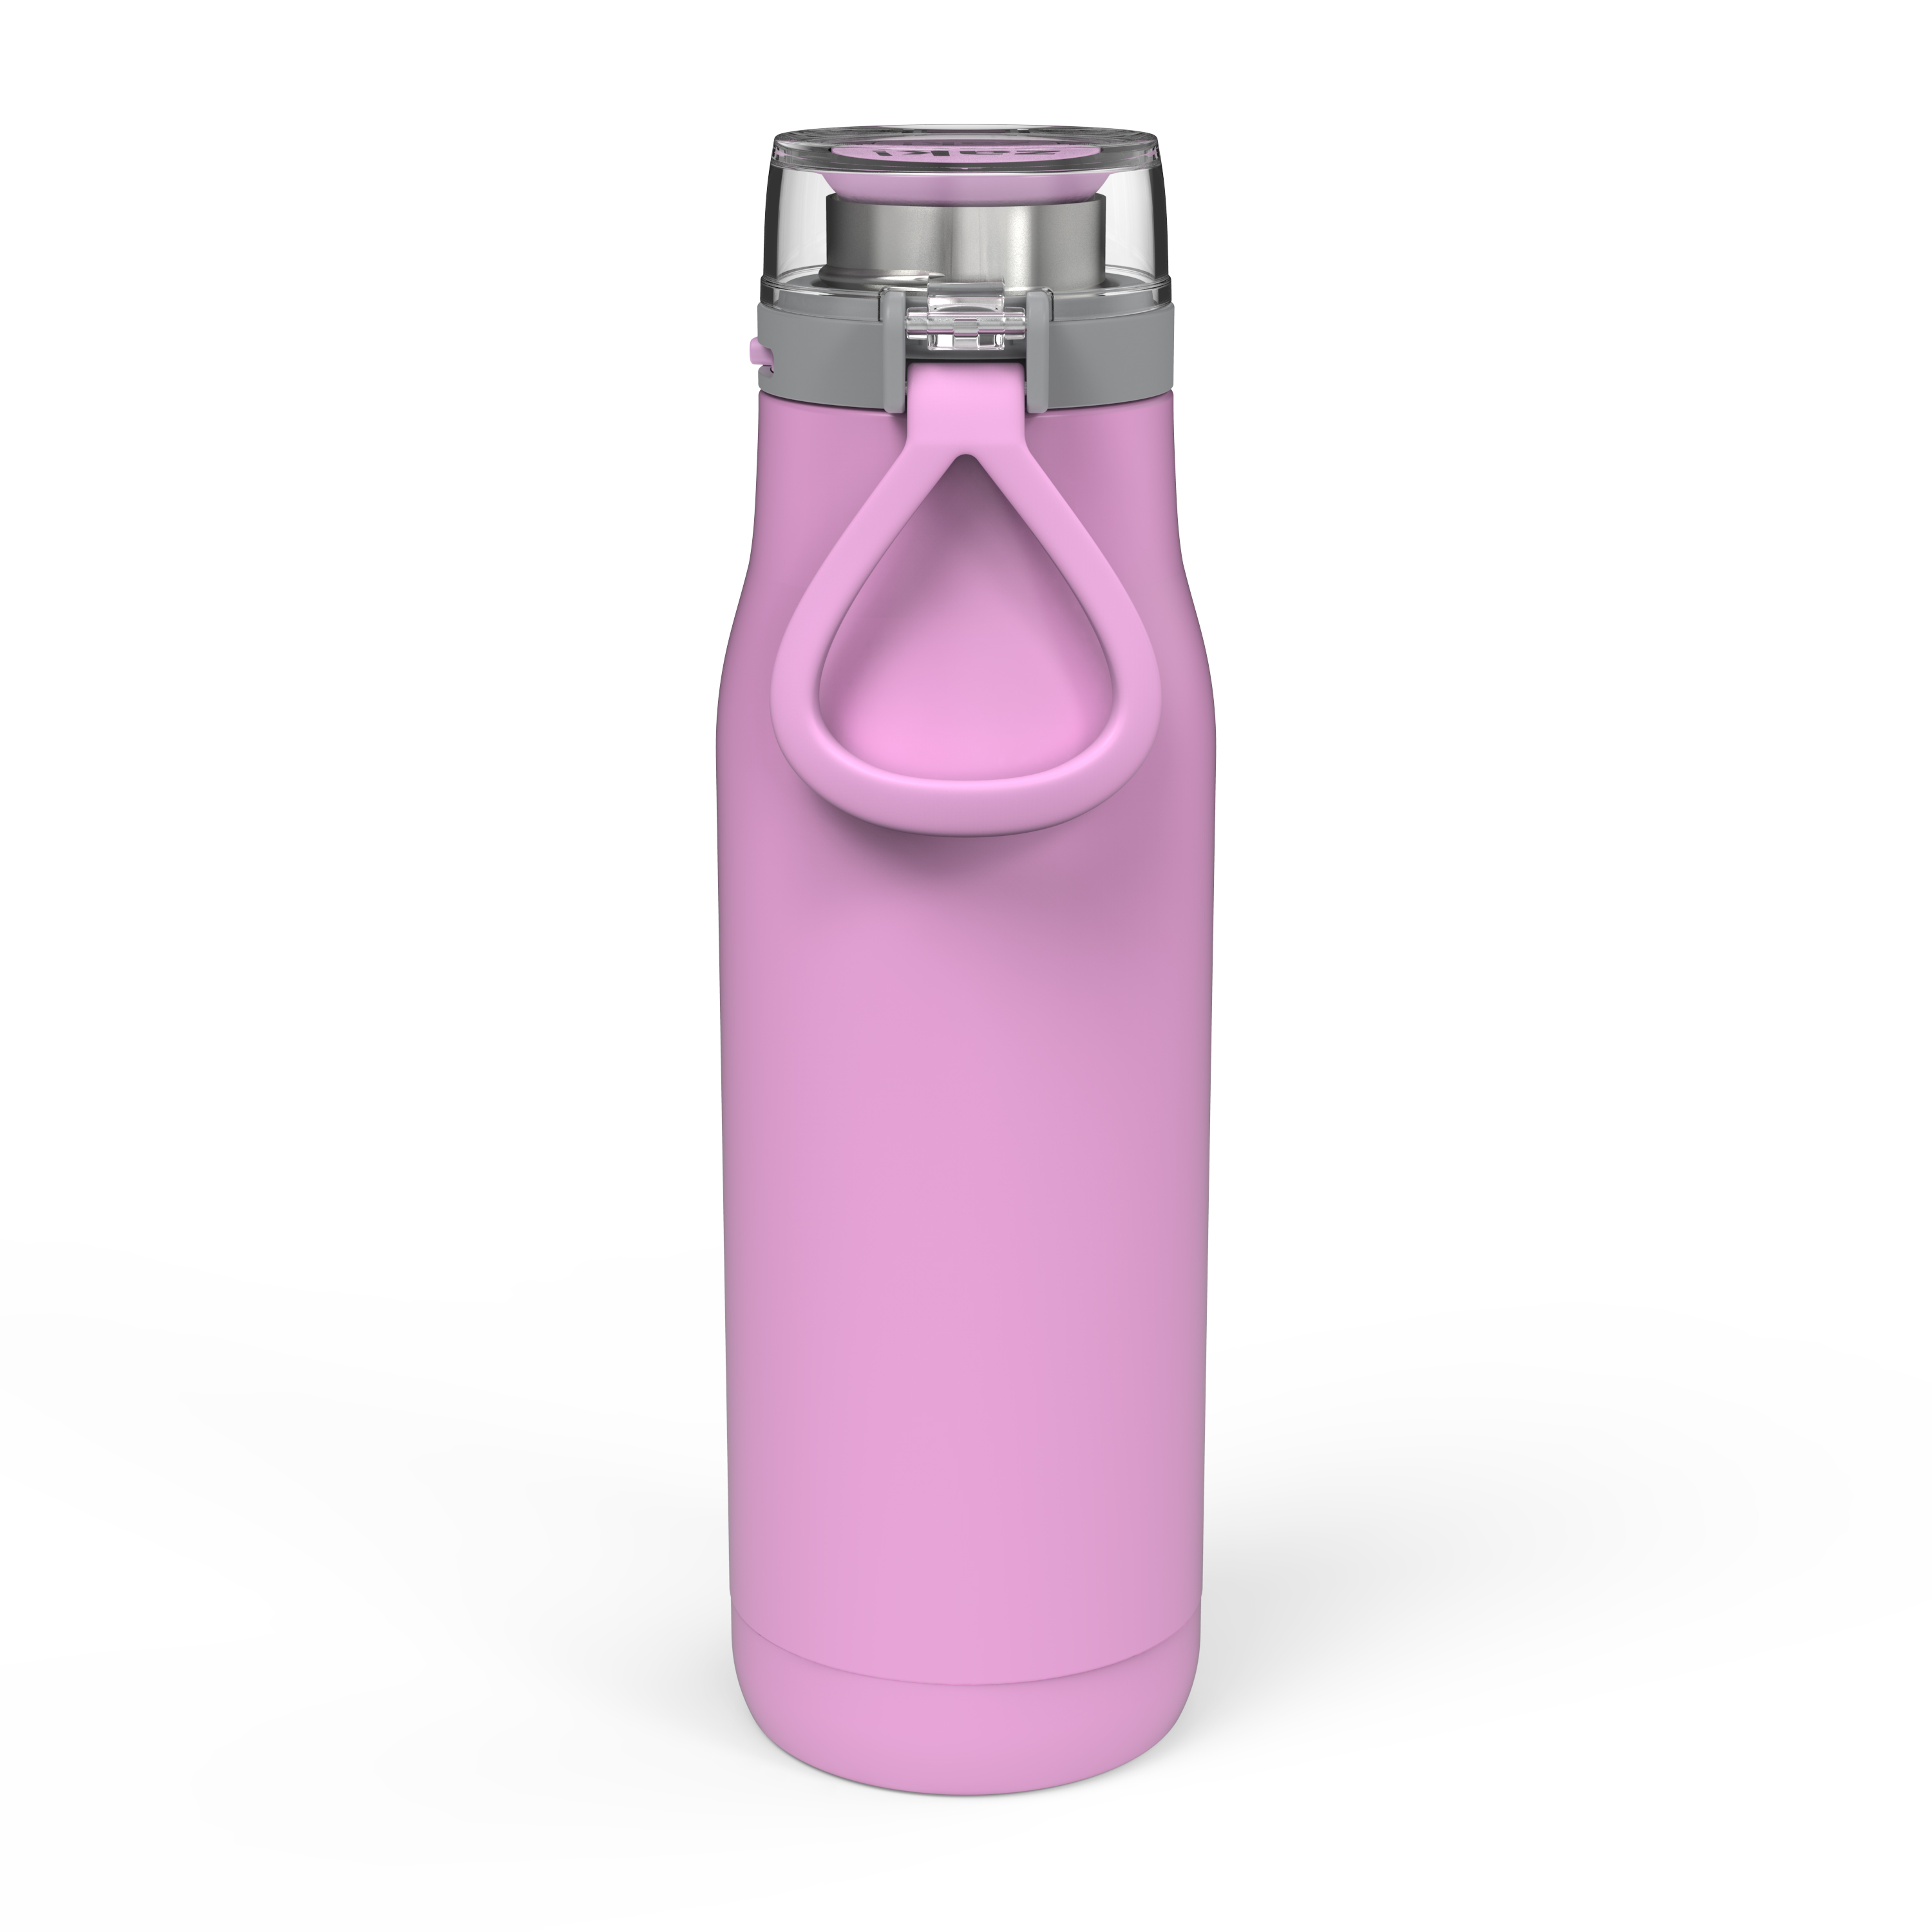 Kiona 20 ounce Vacuum Insulated Stainless Steel Tumbler, Lilac slideshow image 3